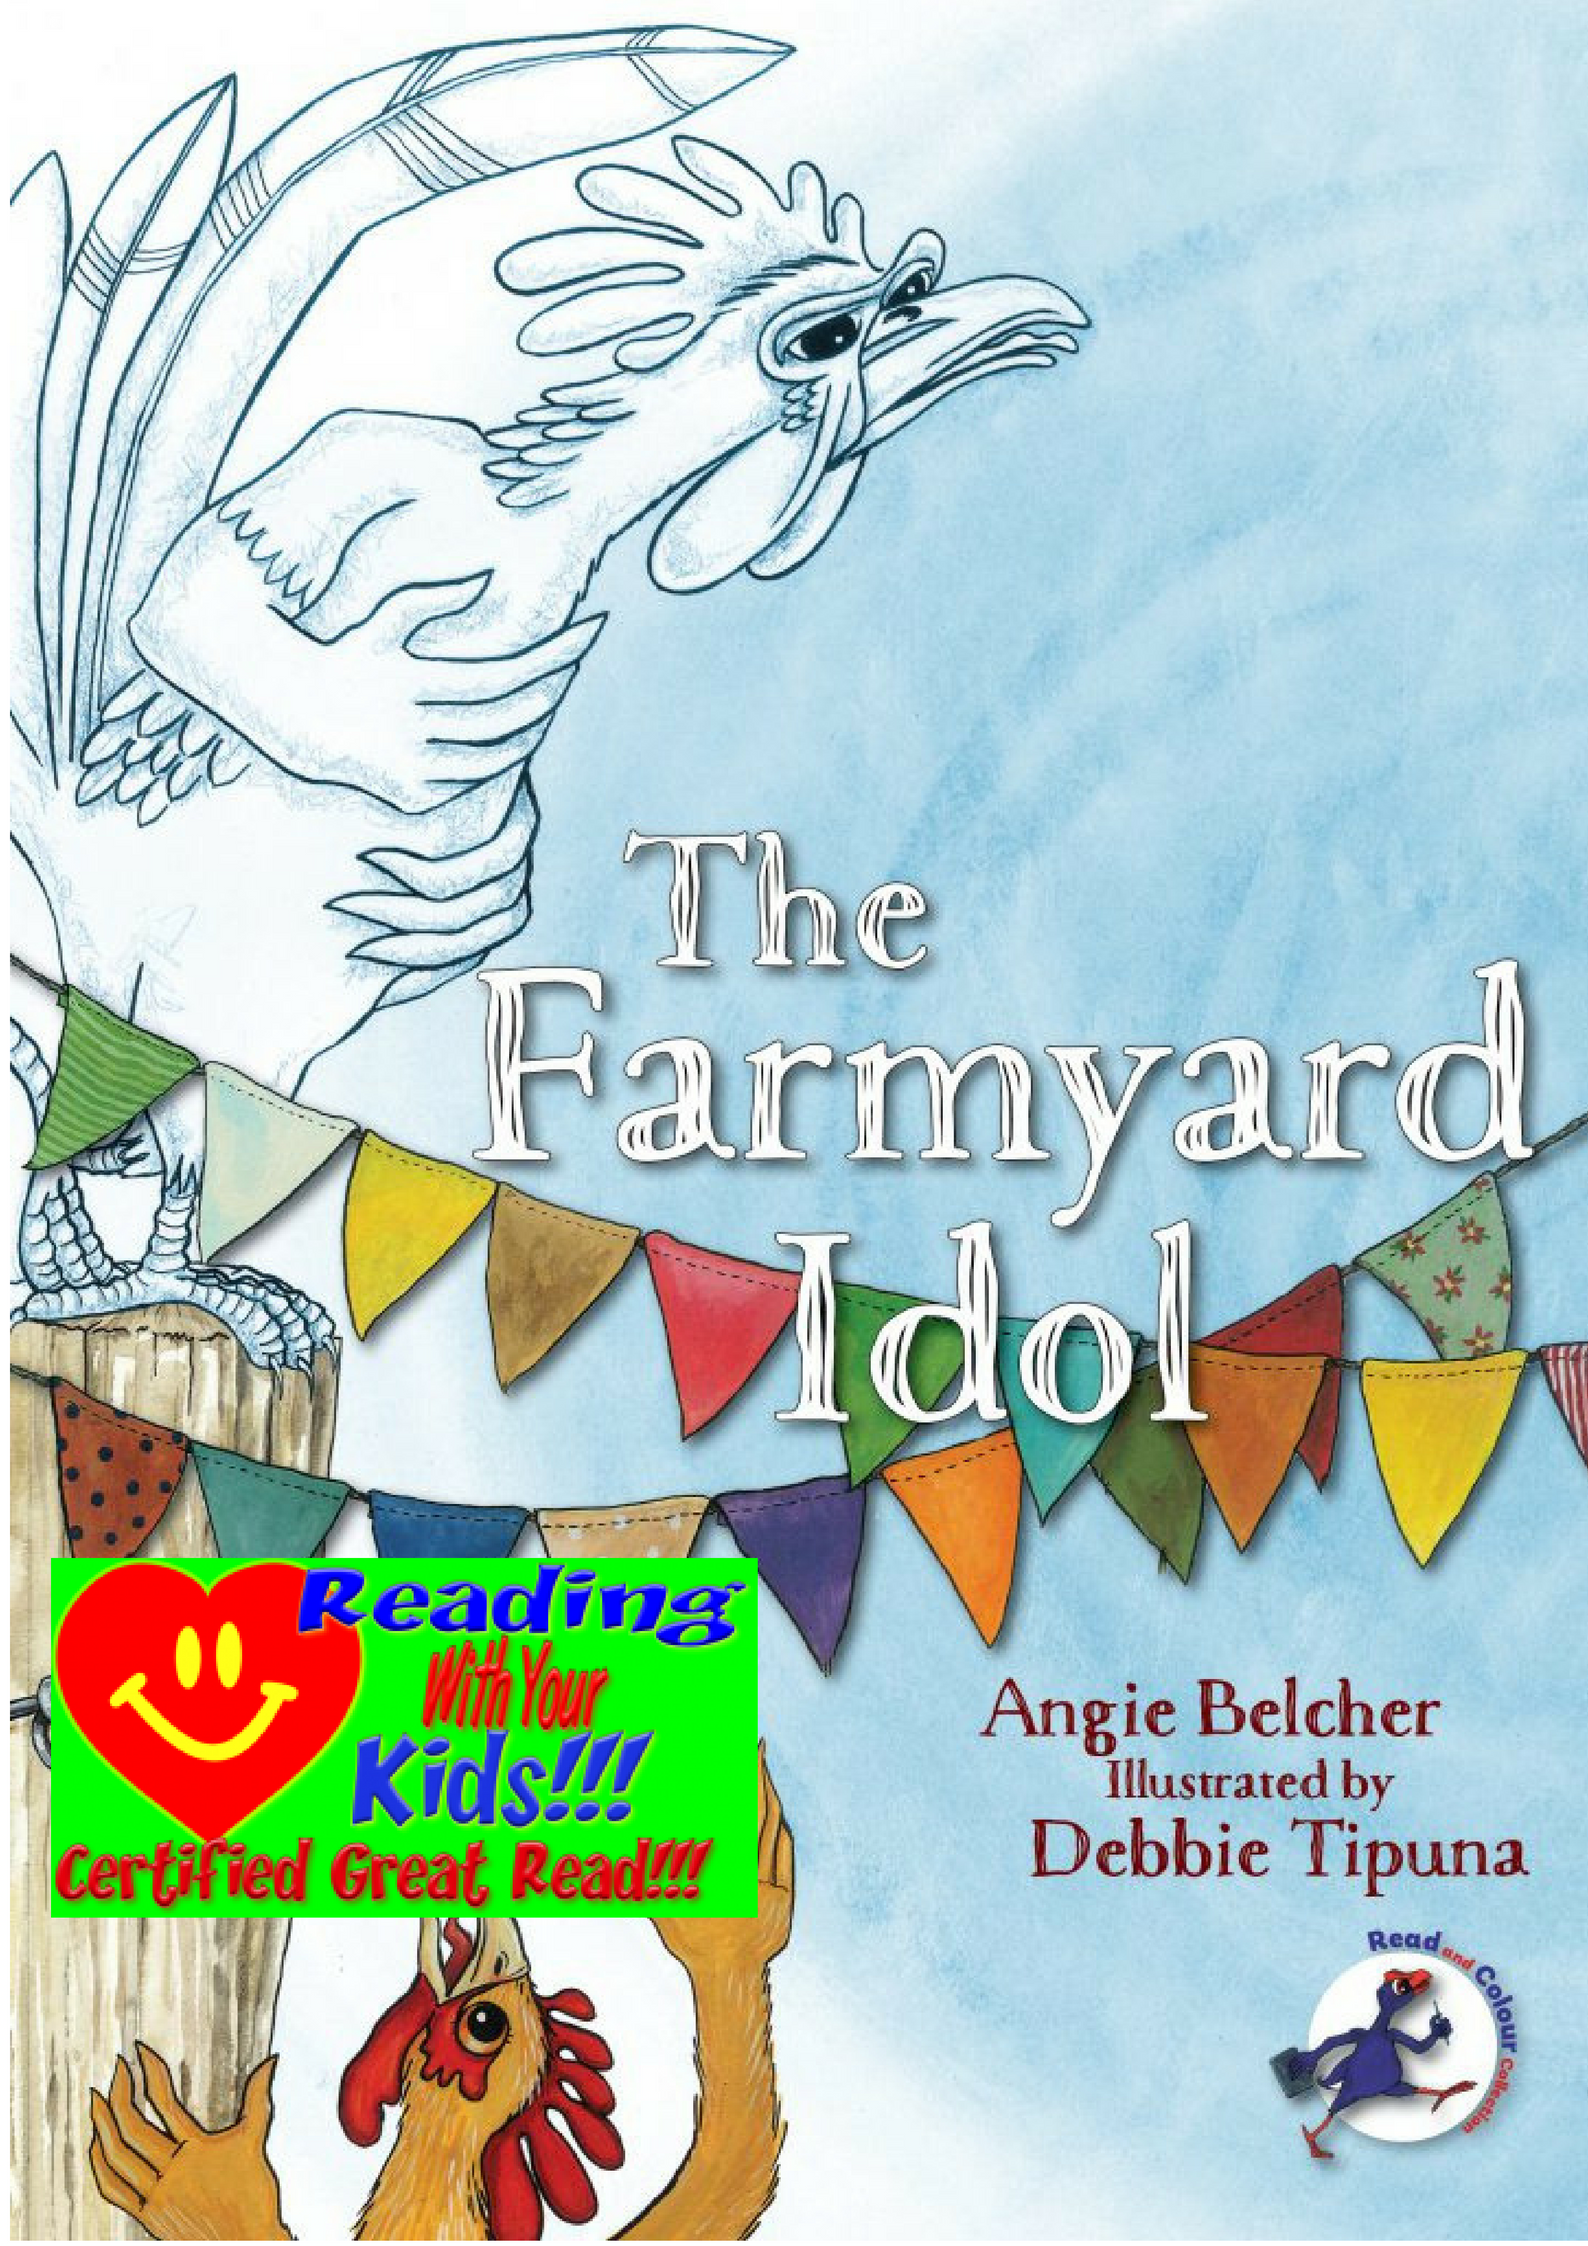 The Farmyard Idol by Angie Belcher: #RWYK Great Read Certified